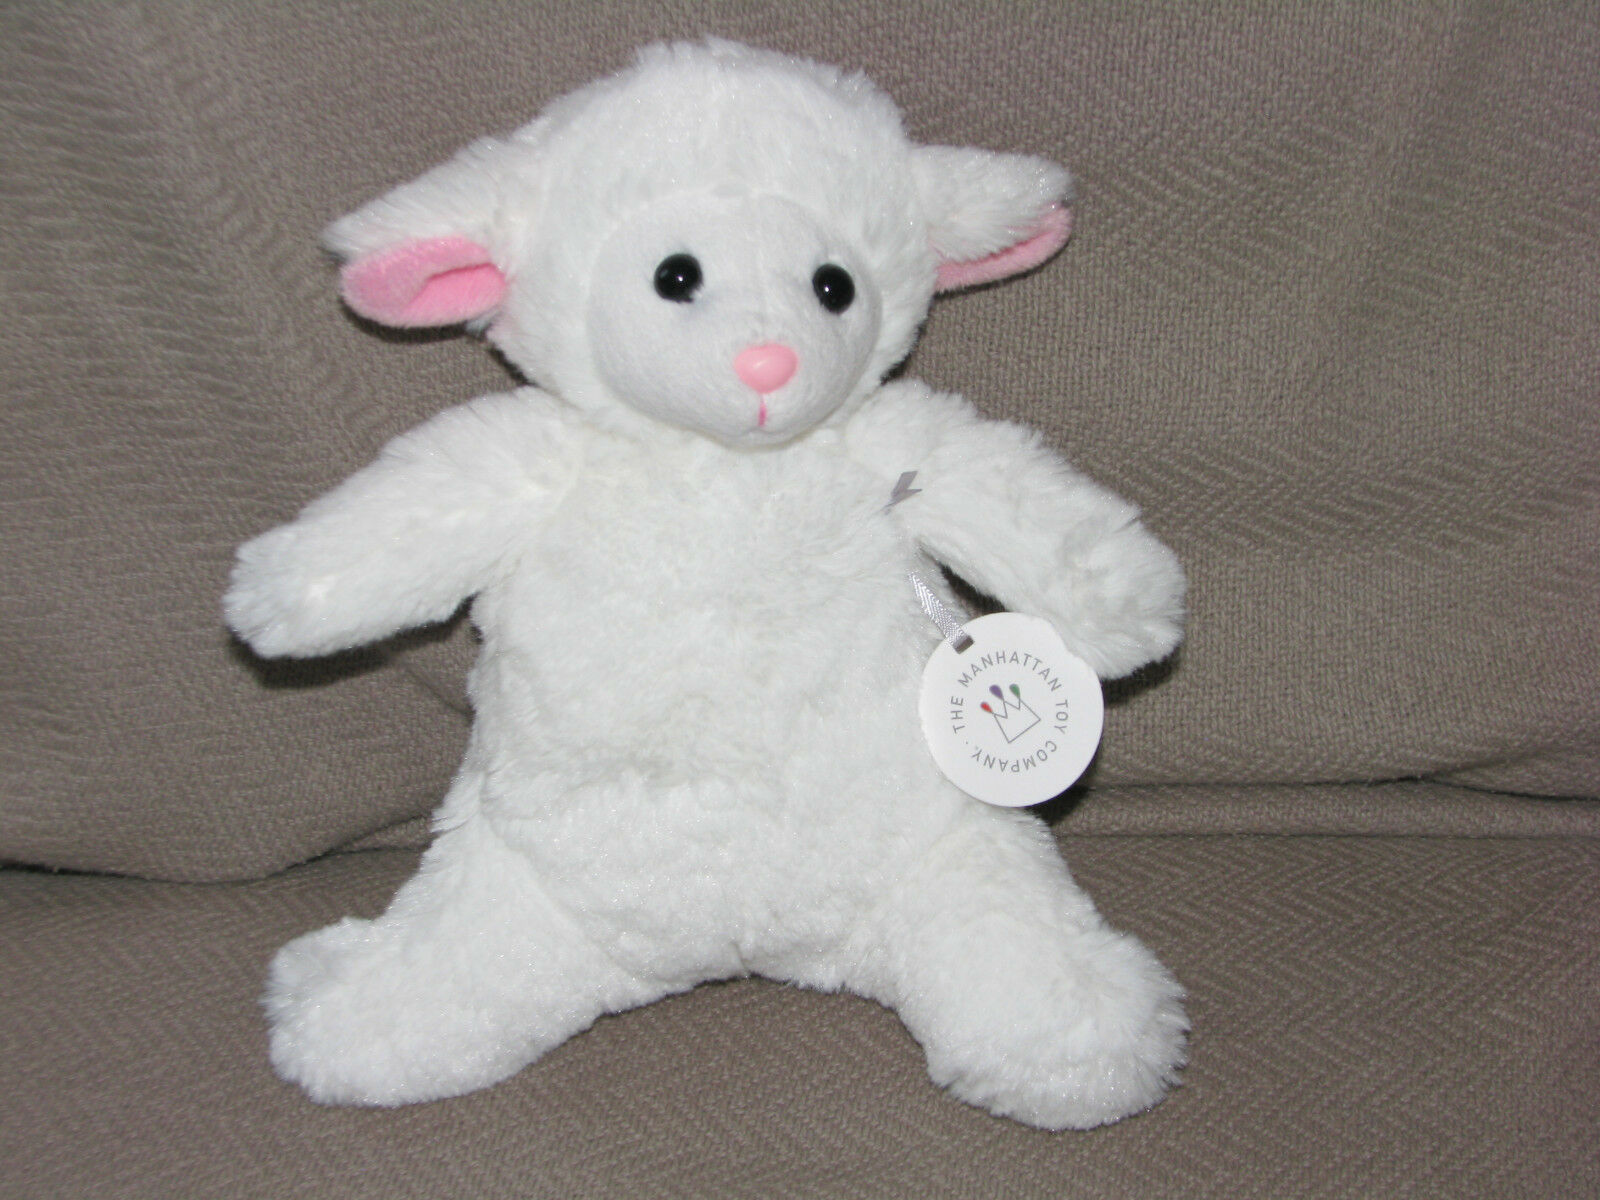 Primary image for 2016 MANHATTAN TOY STUFFED PLUSH FLUFFY SOFT WHITE LAMB SHEEP PINK NOSE EAR NEW